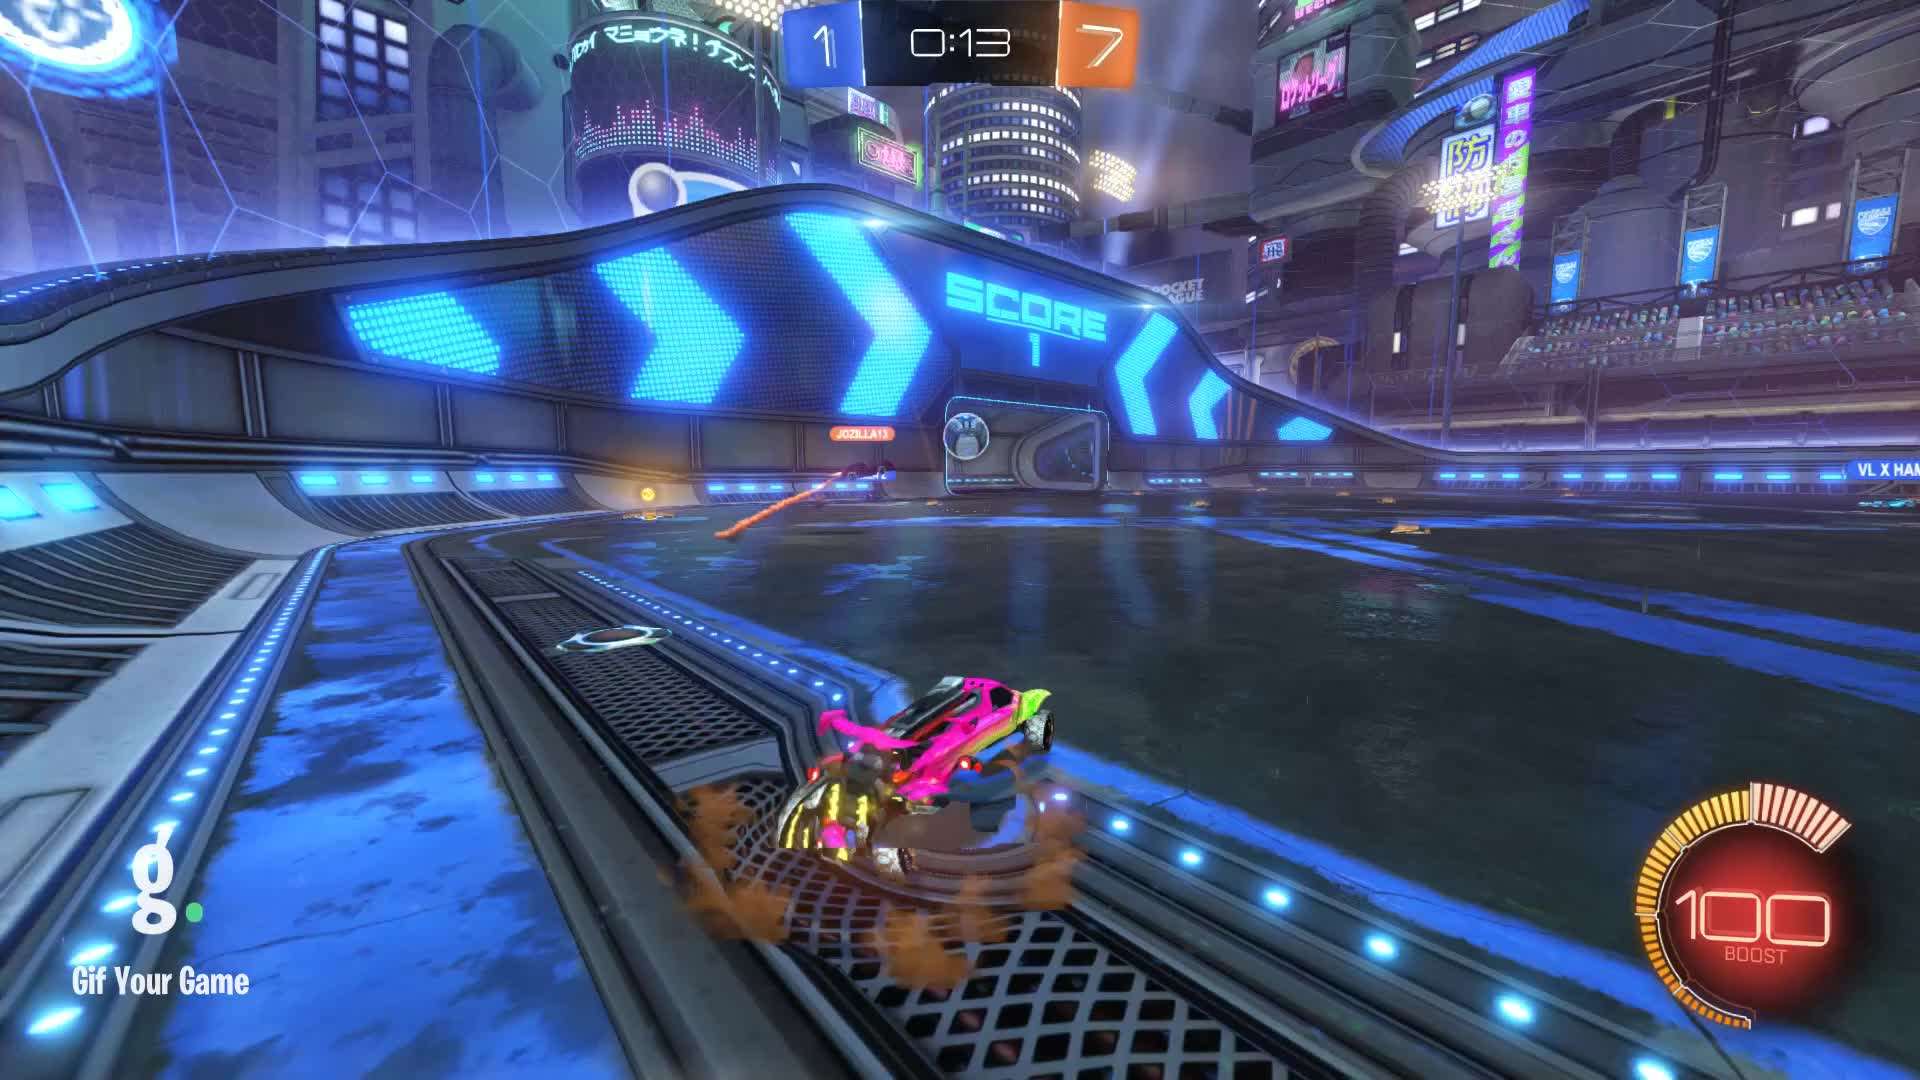 Gif Your Game, GifYourGame, Goal, Rocket League, RocketLeague, TheRealPancakeHero, Goal 9: TheRealPancakeHero GIFs